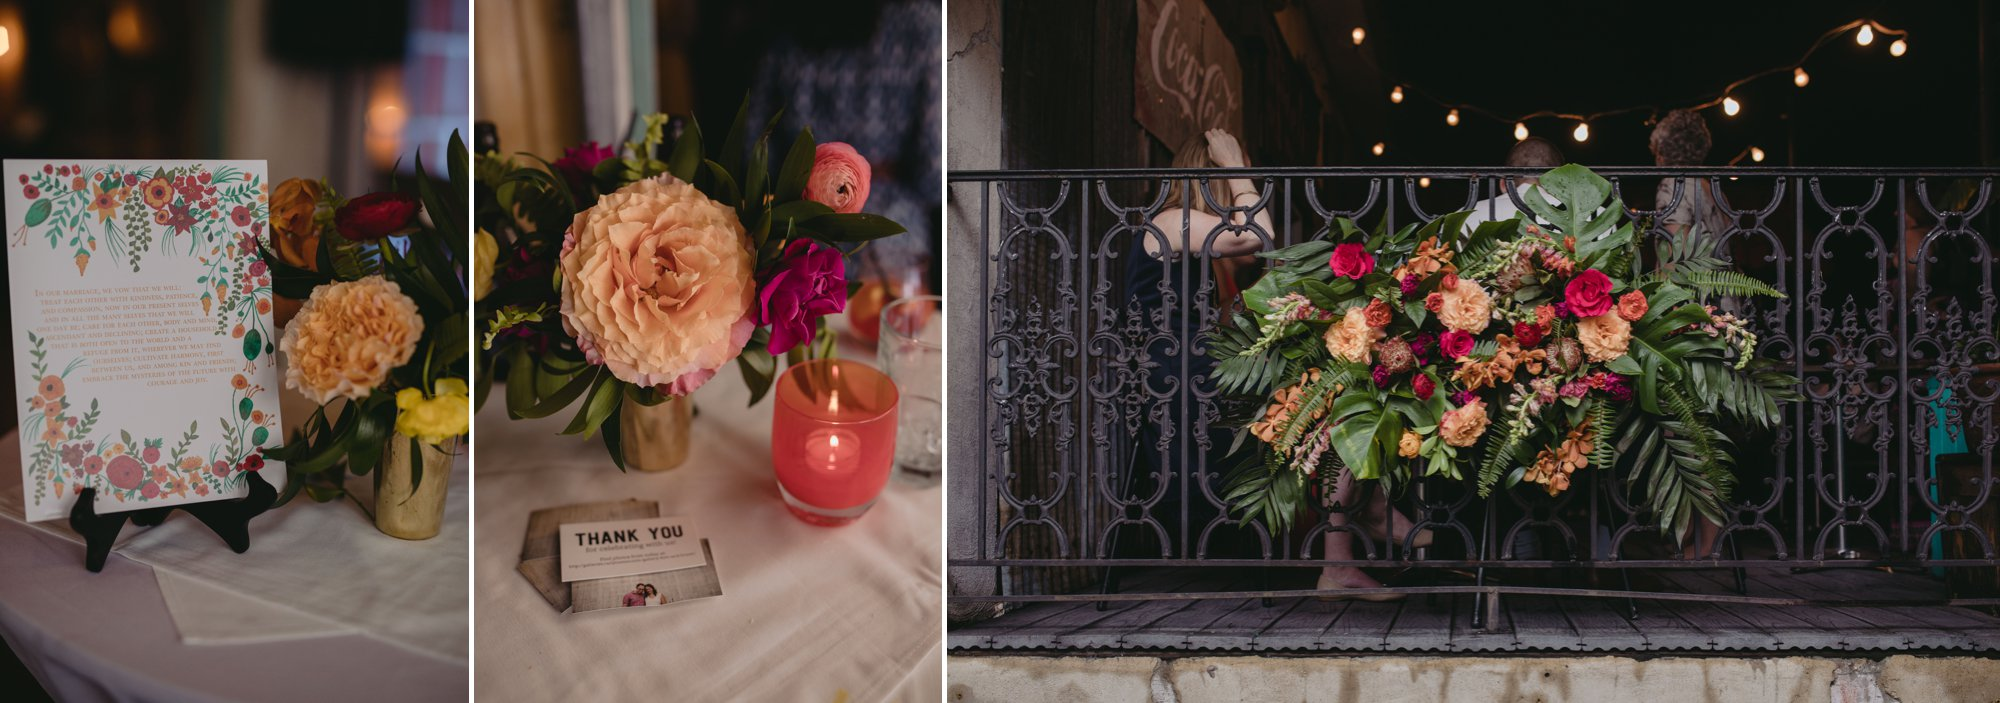 richmond virginia wedding havana 59.Reception florals